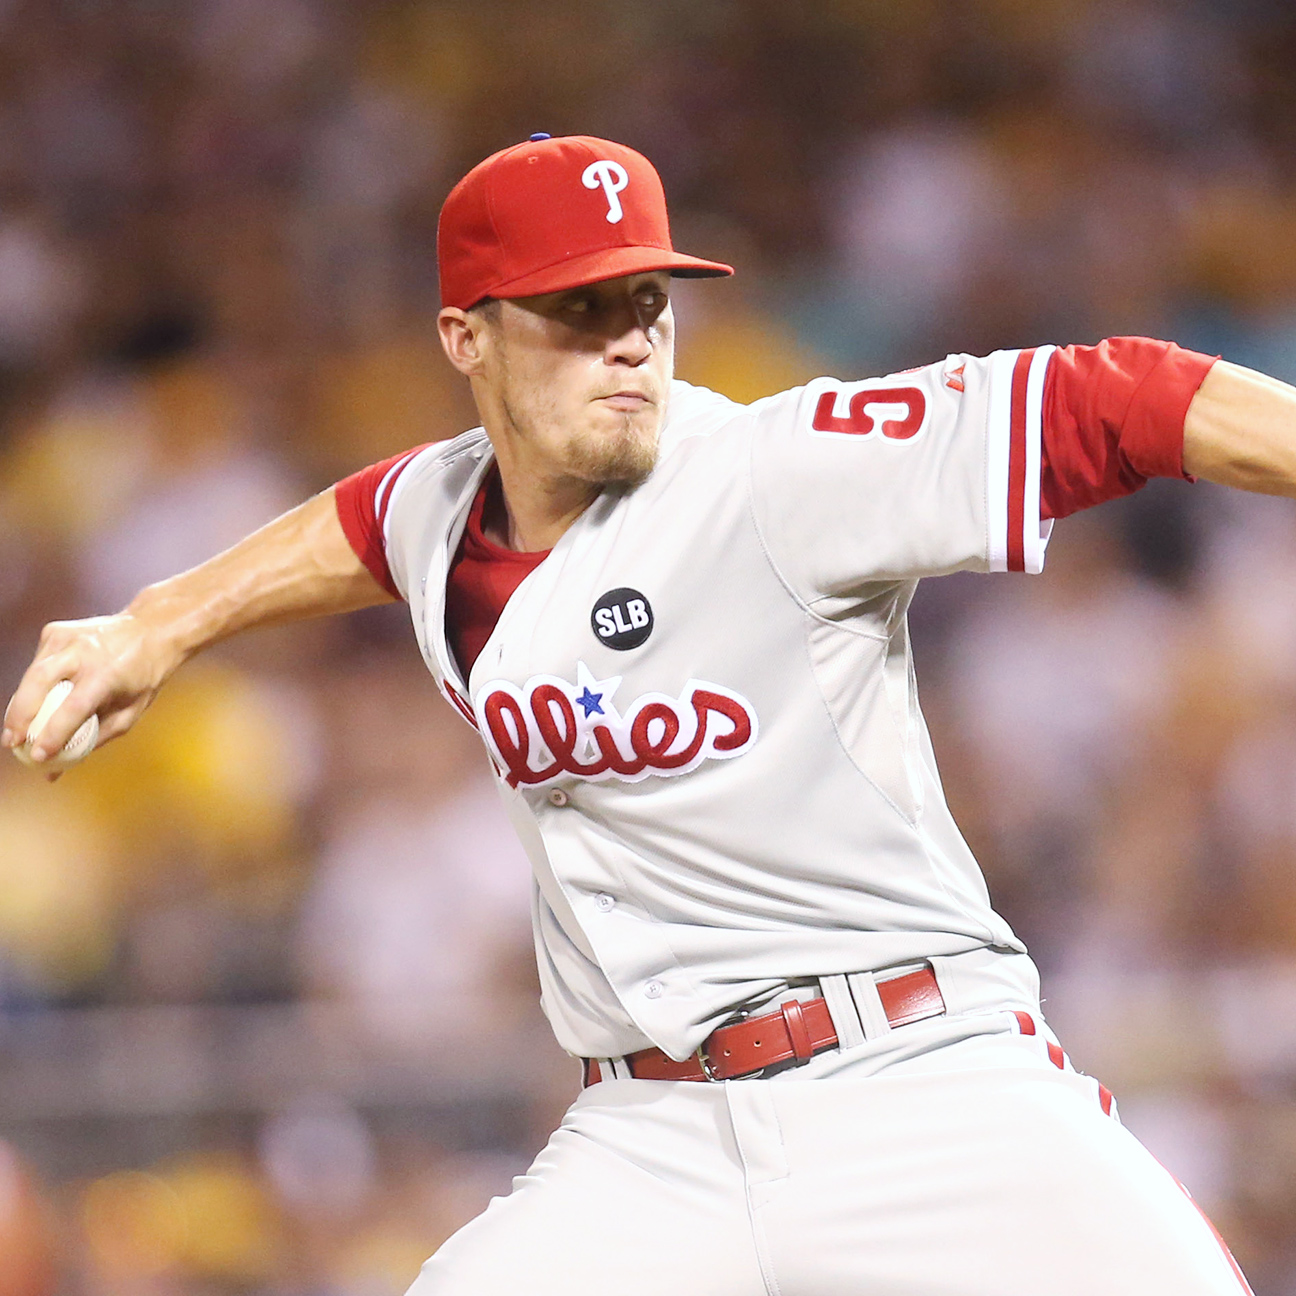 MLB Hot Stove Daily: Phillies could trade Giles, and more